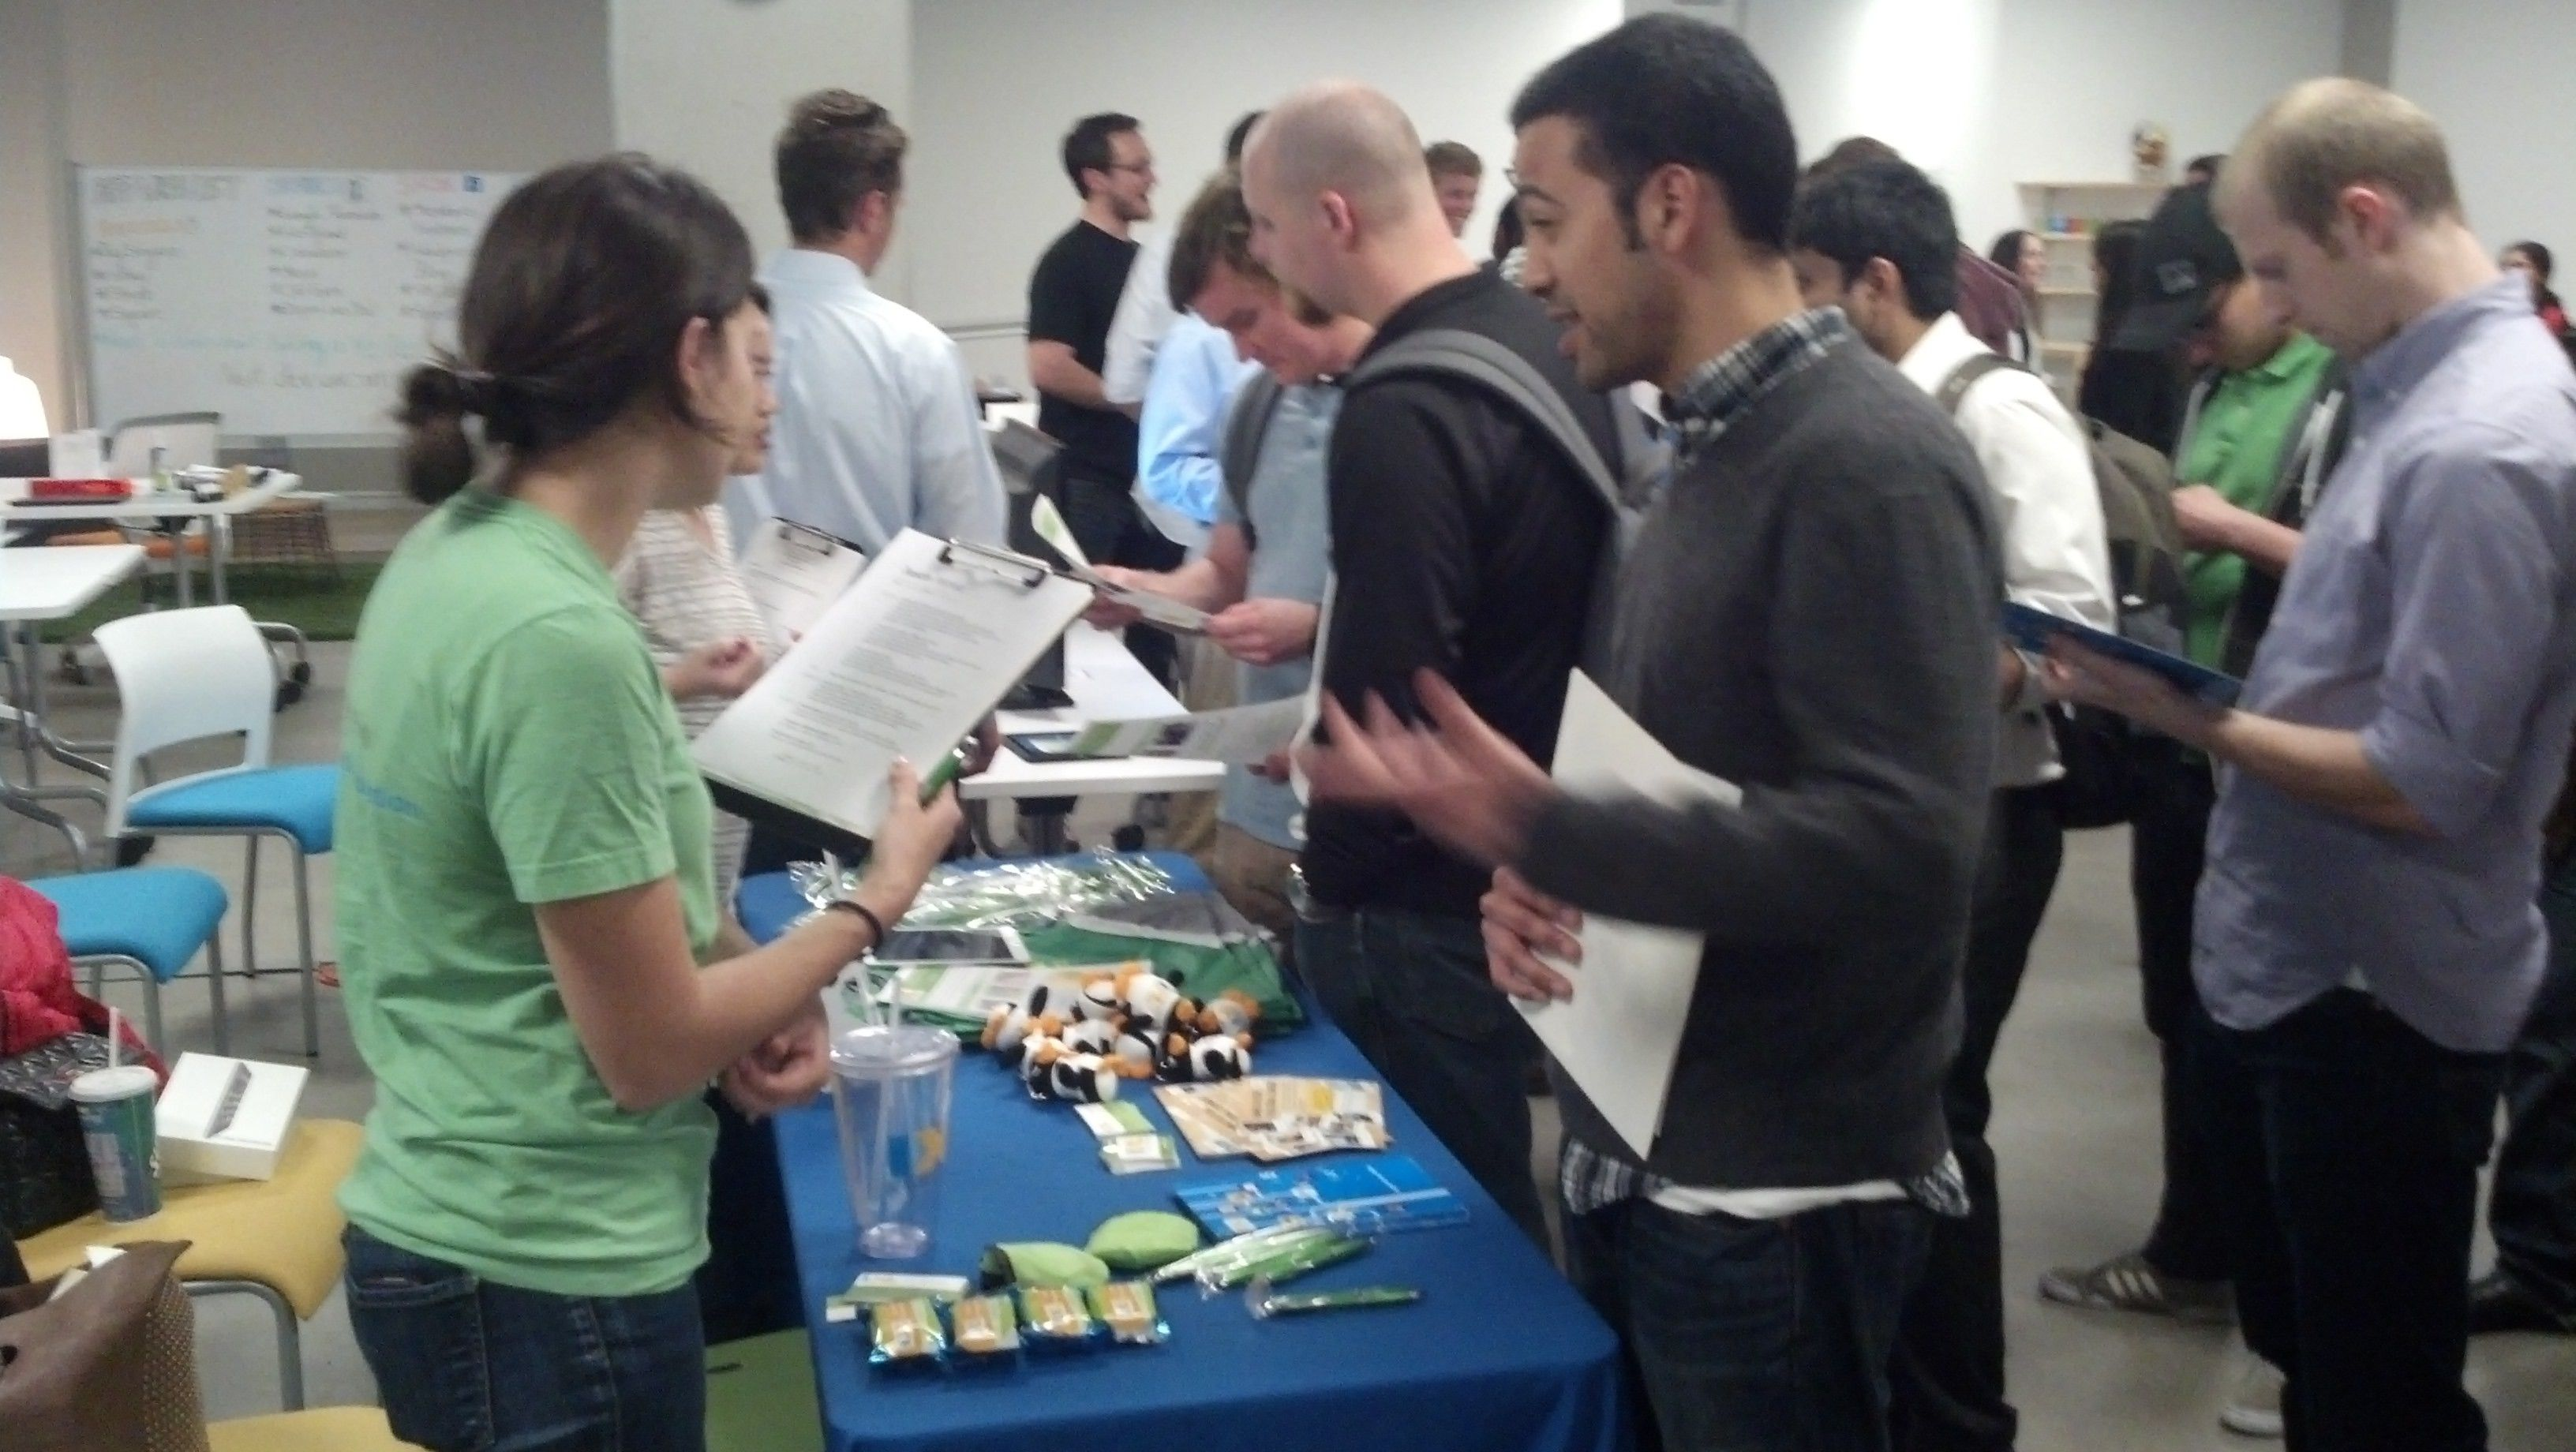 Bay Area Software Engineers (BASE)